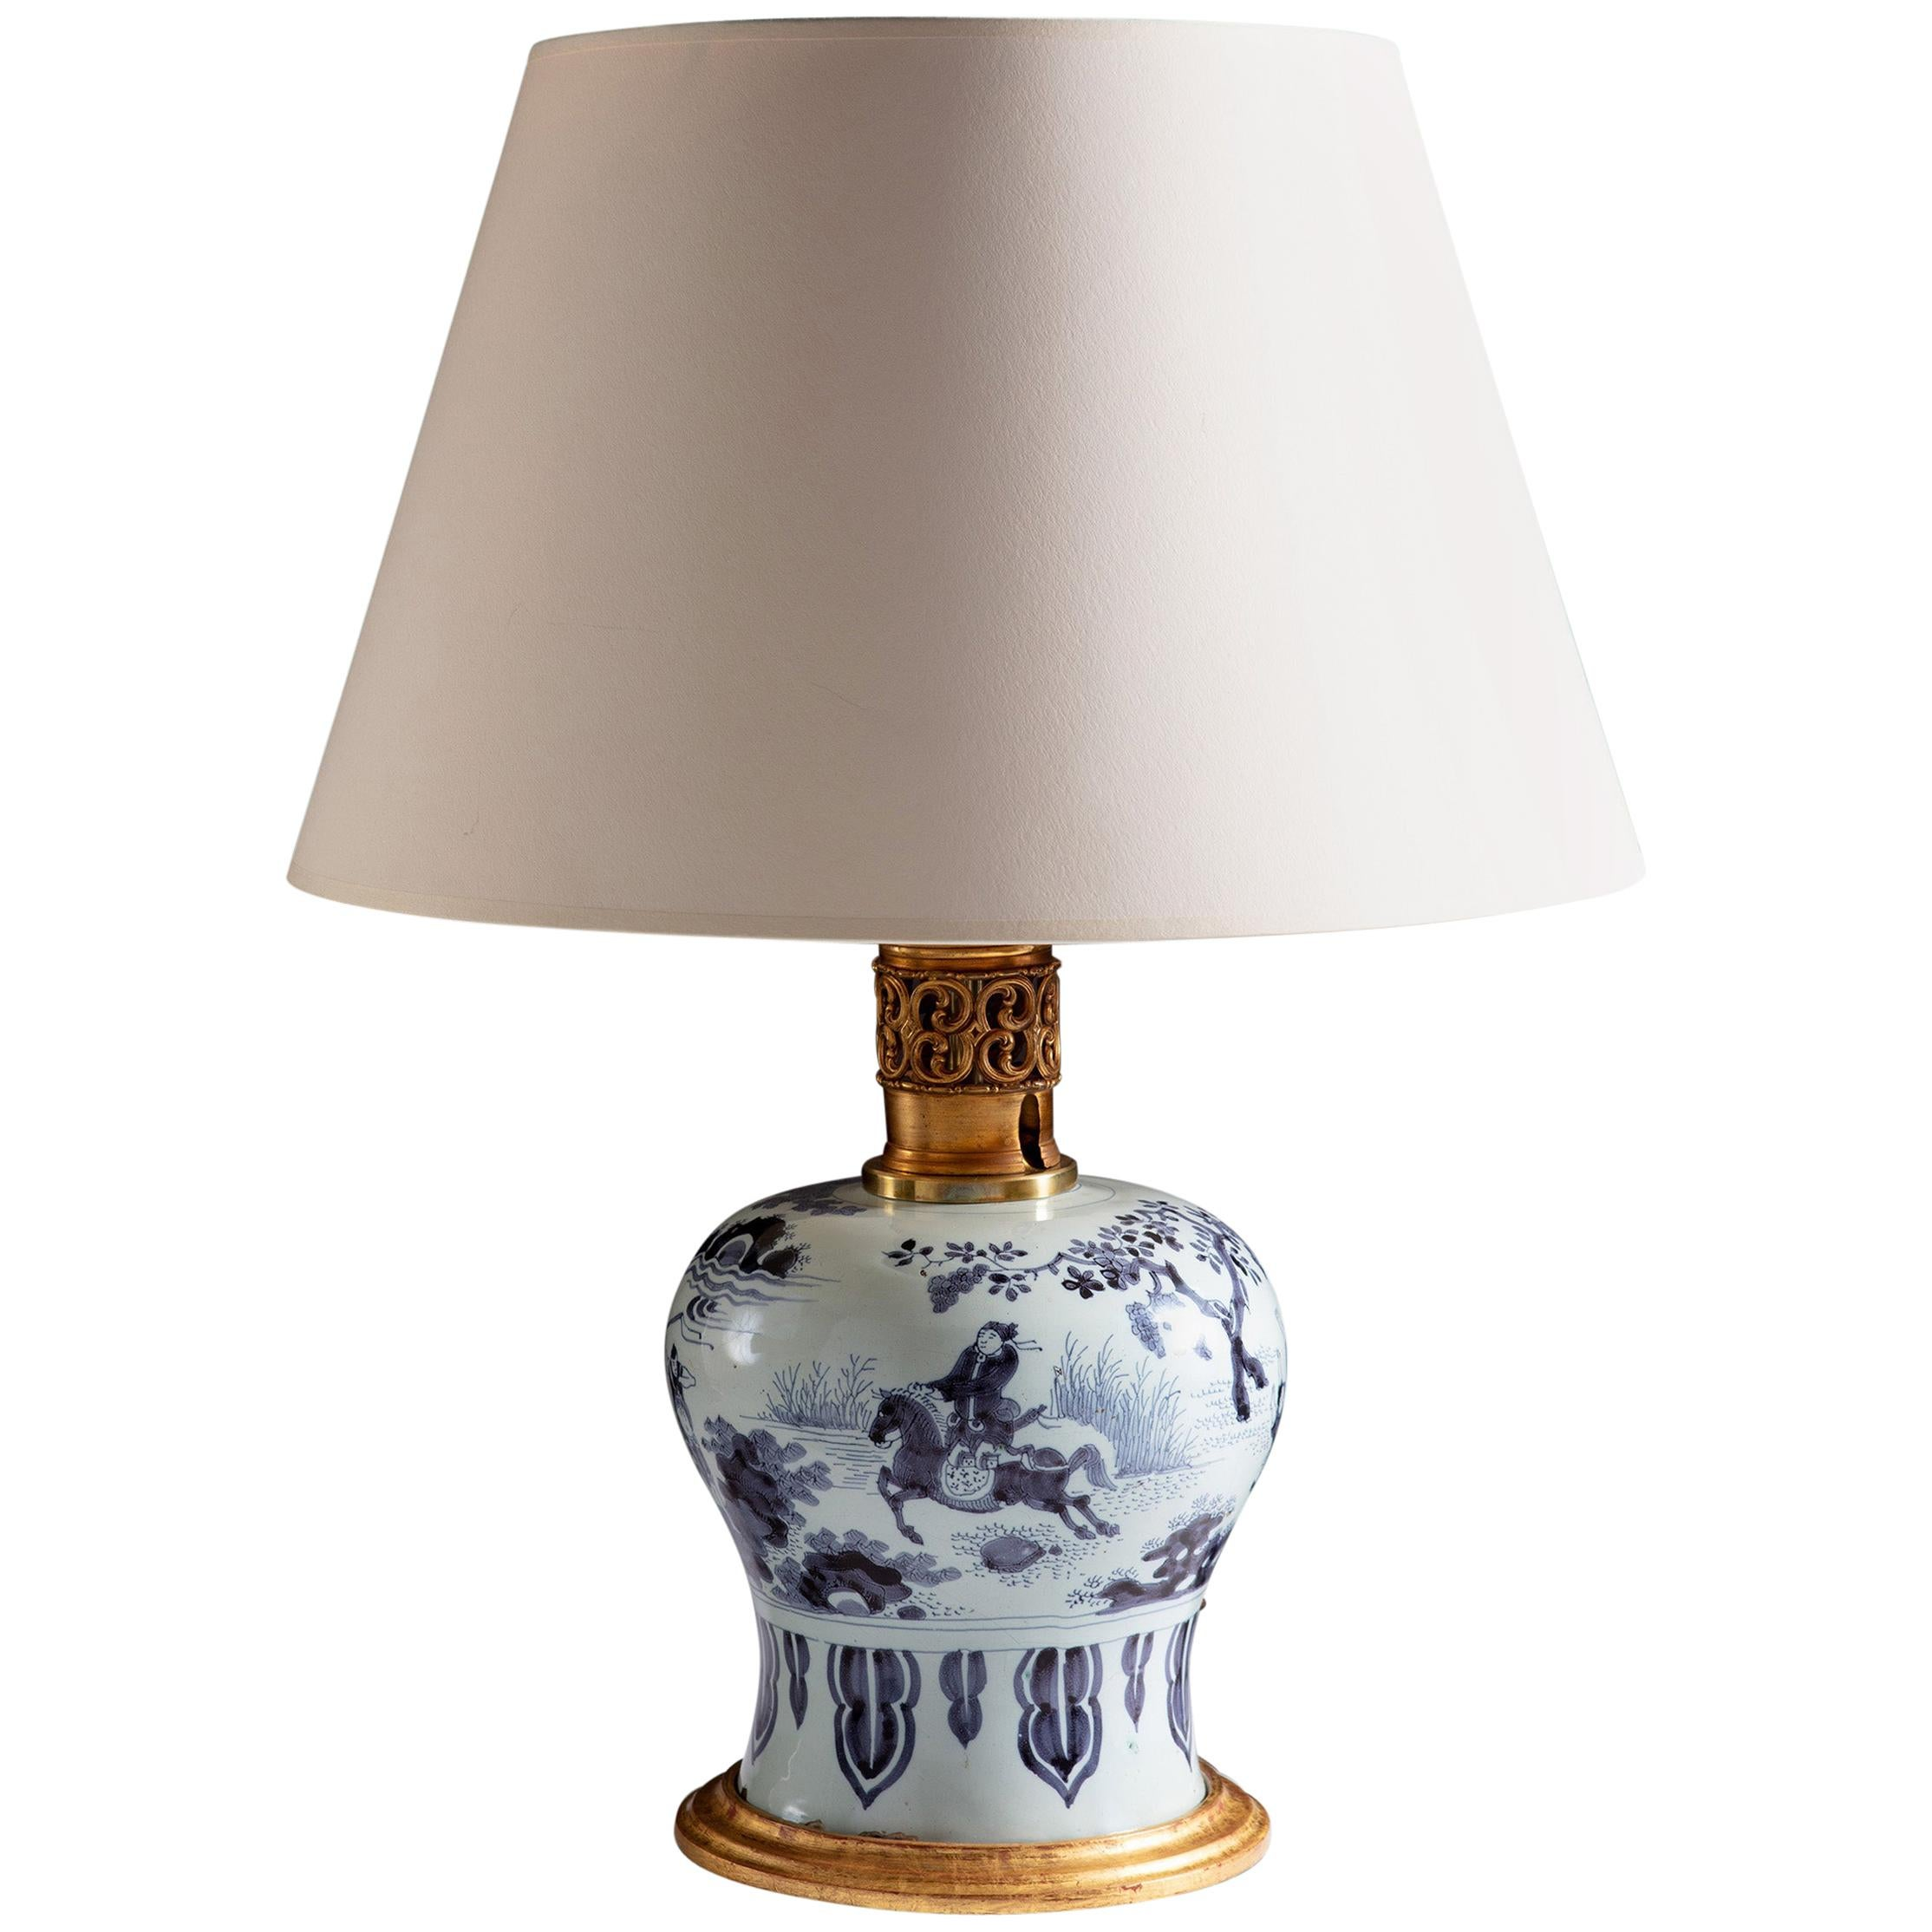 Rare 17th Century Delft Vase as a Table Lamp with Giltwood Base